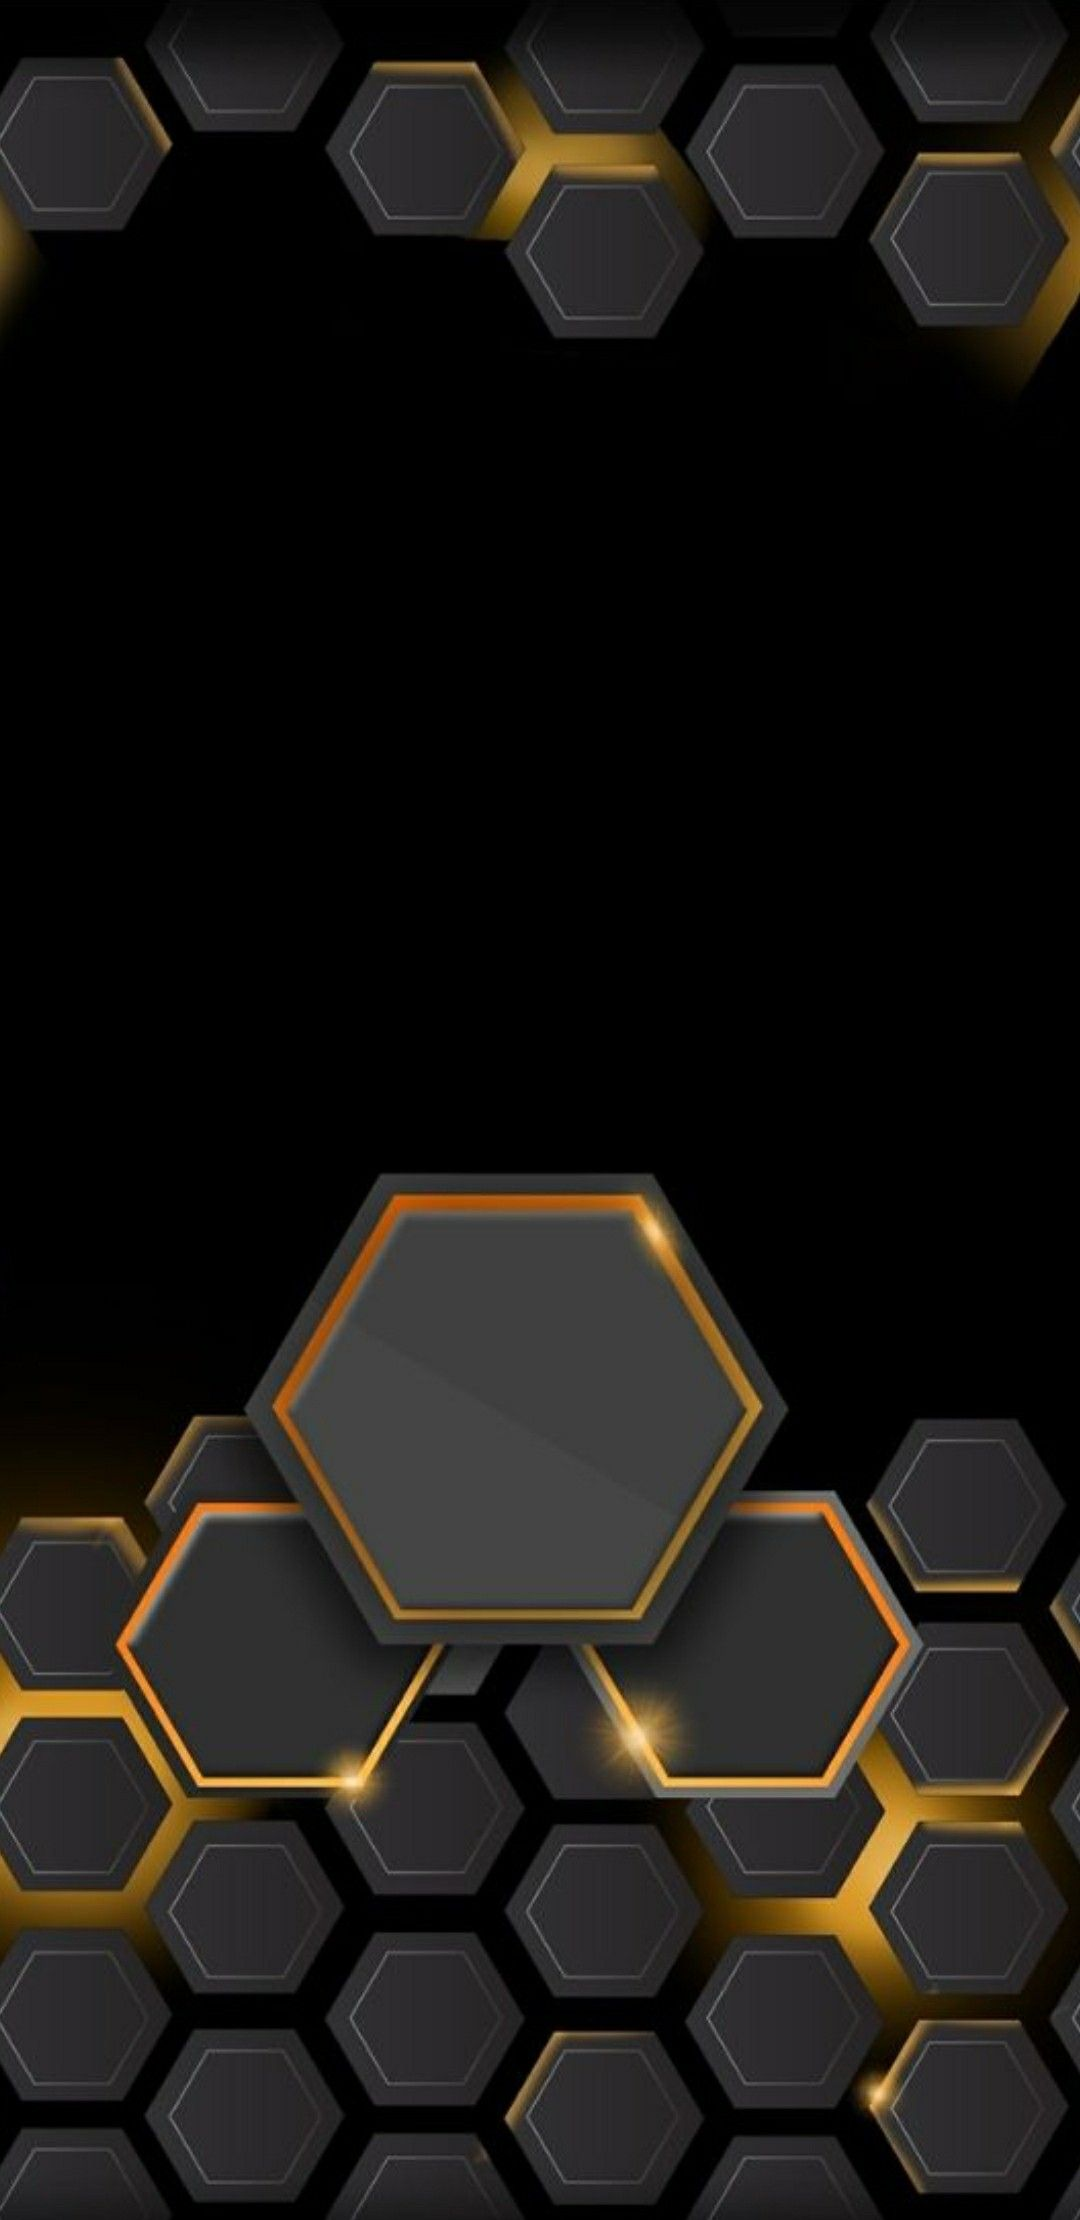 3d Hexagons Hexagon Cellphone Wallpaper Art Wallpaper